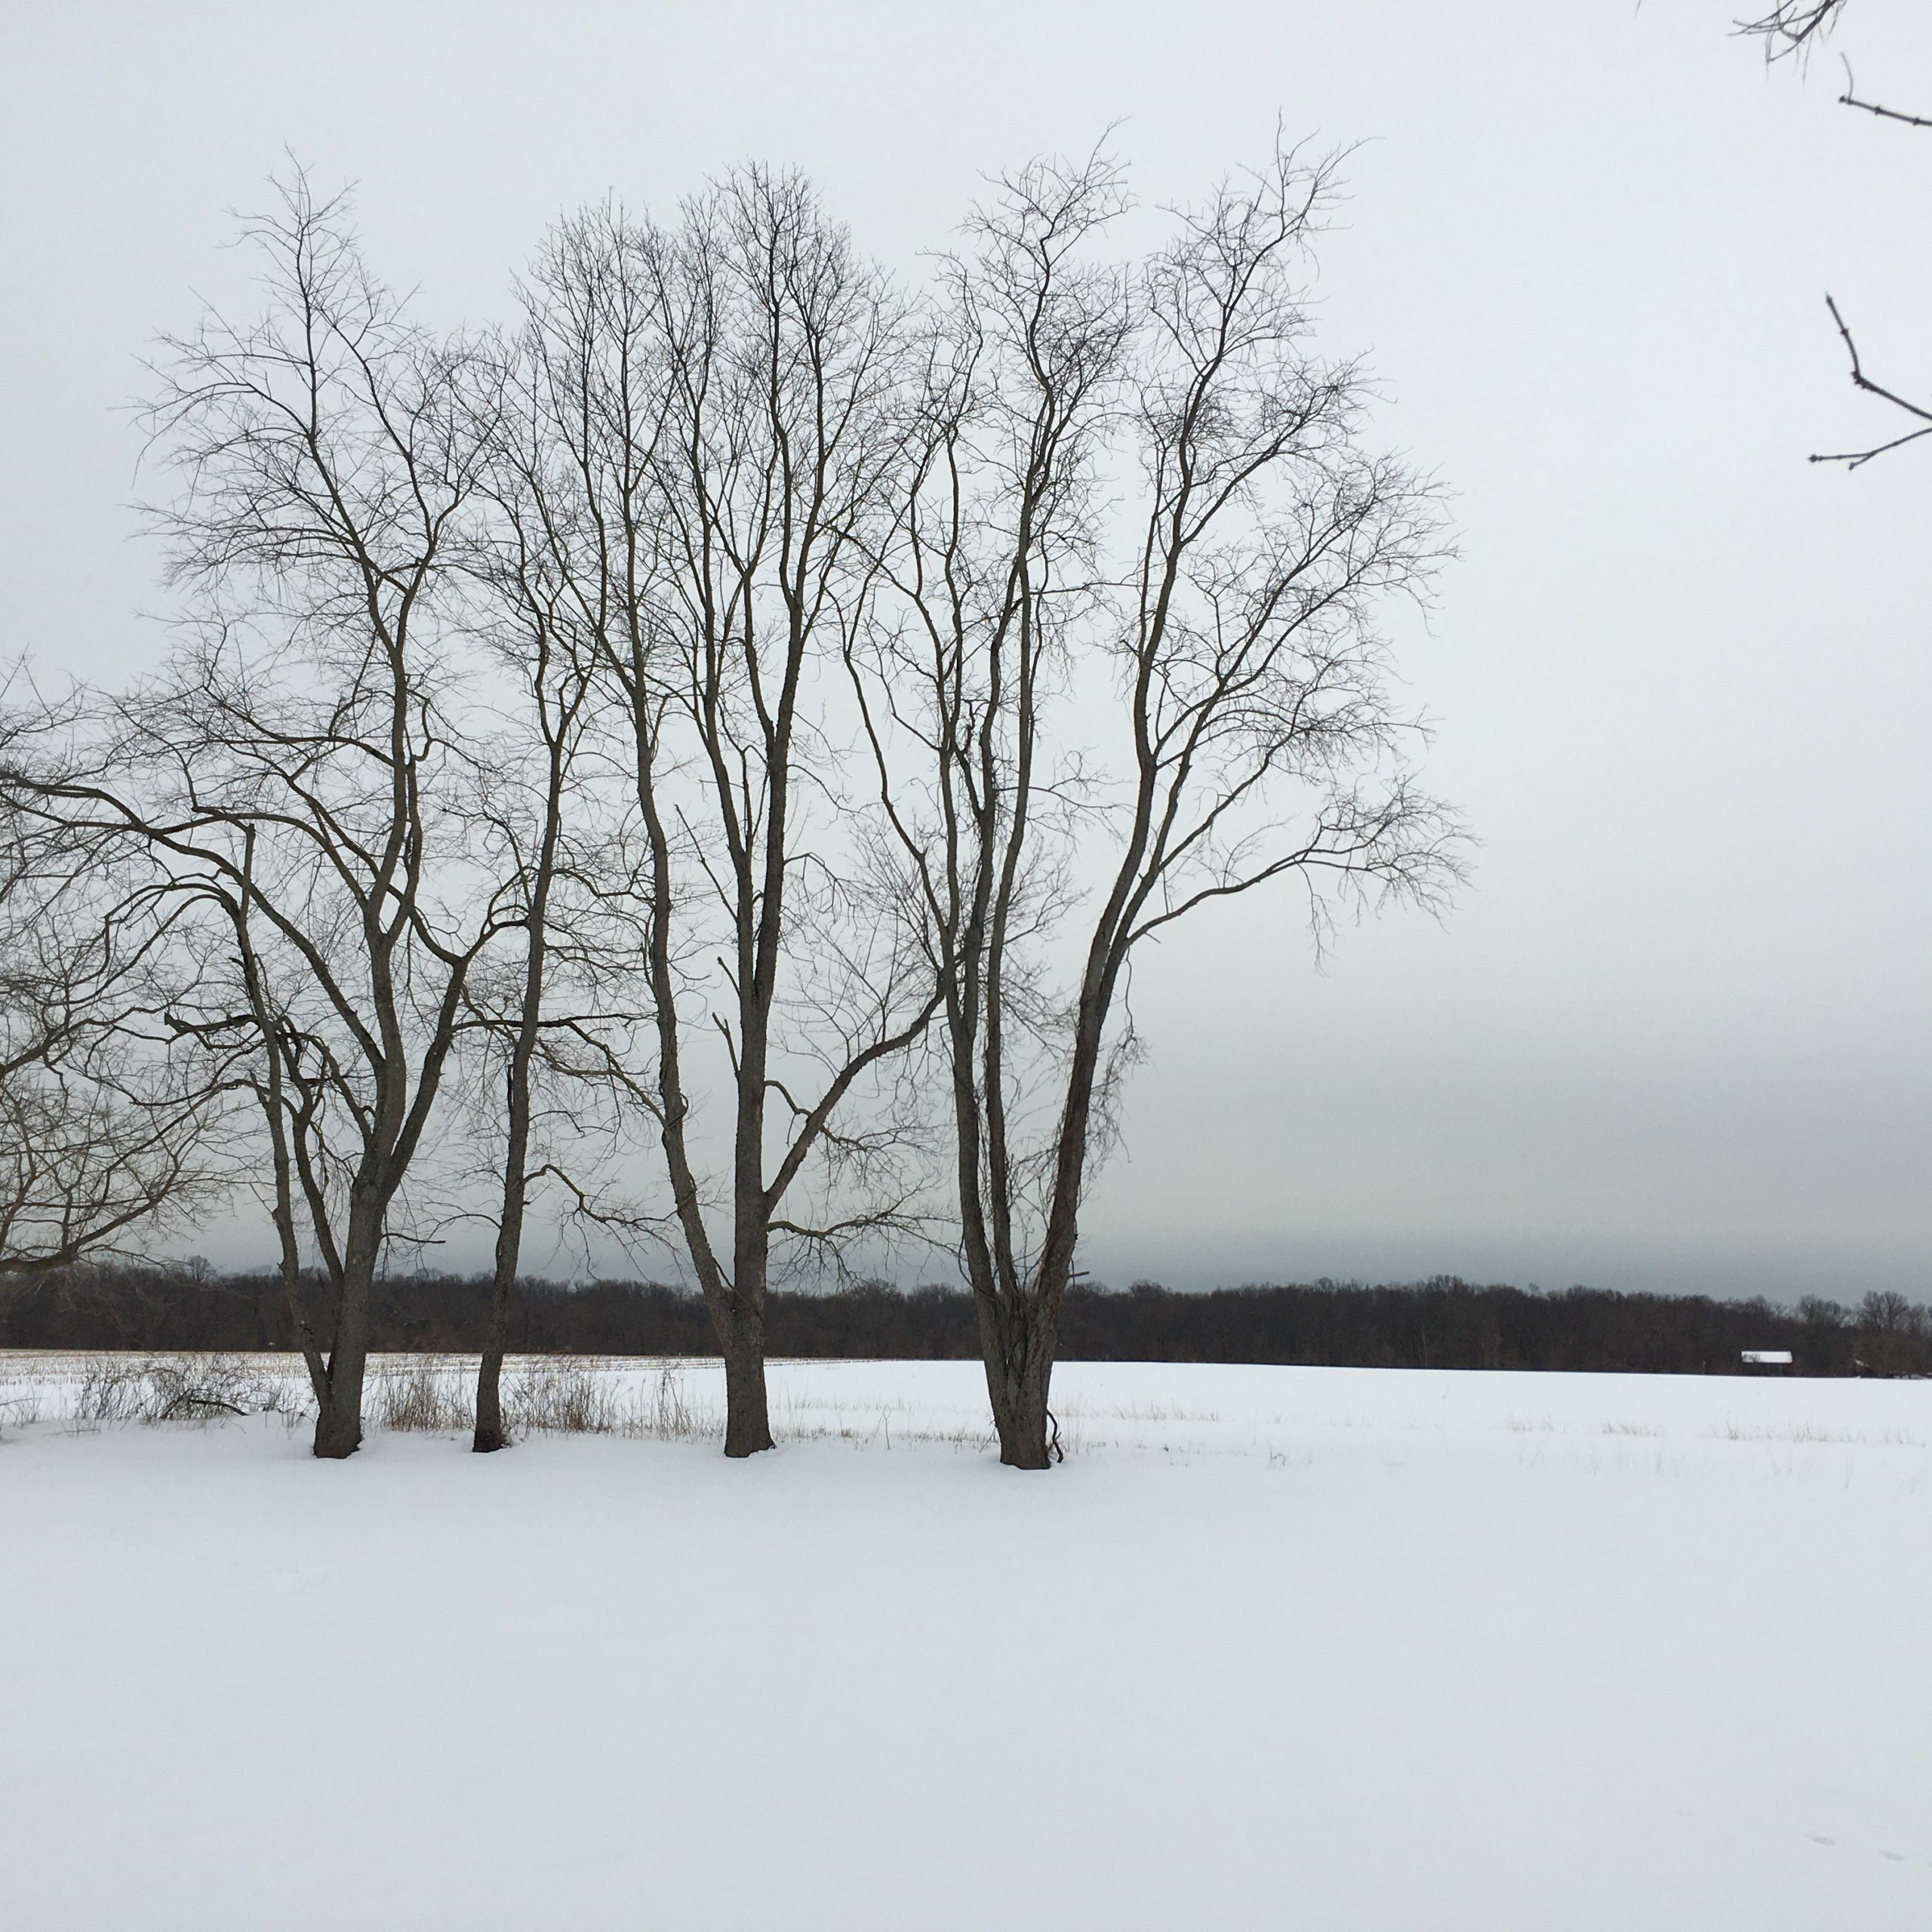 Trees in winter landscape